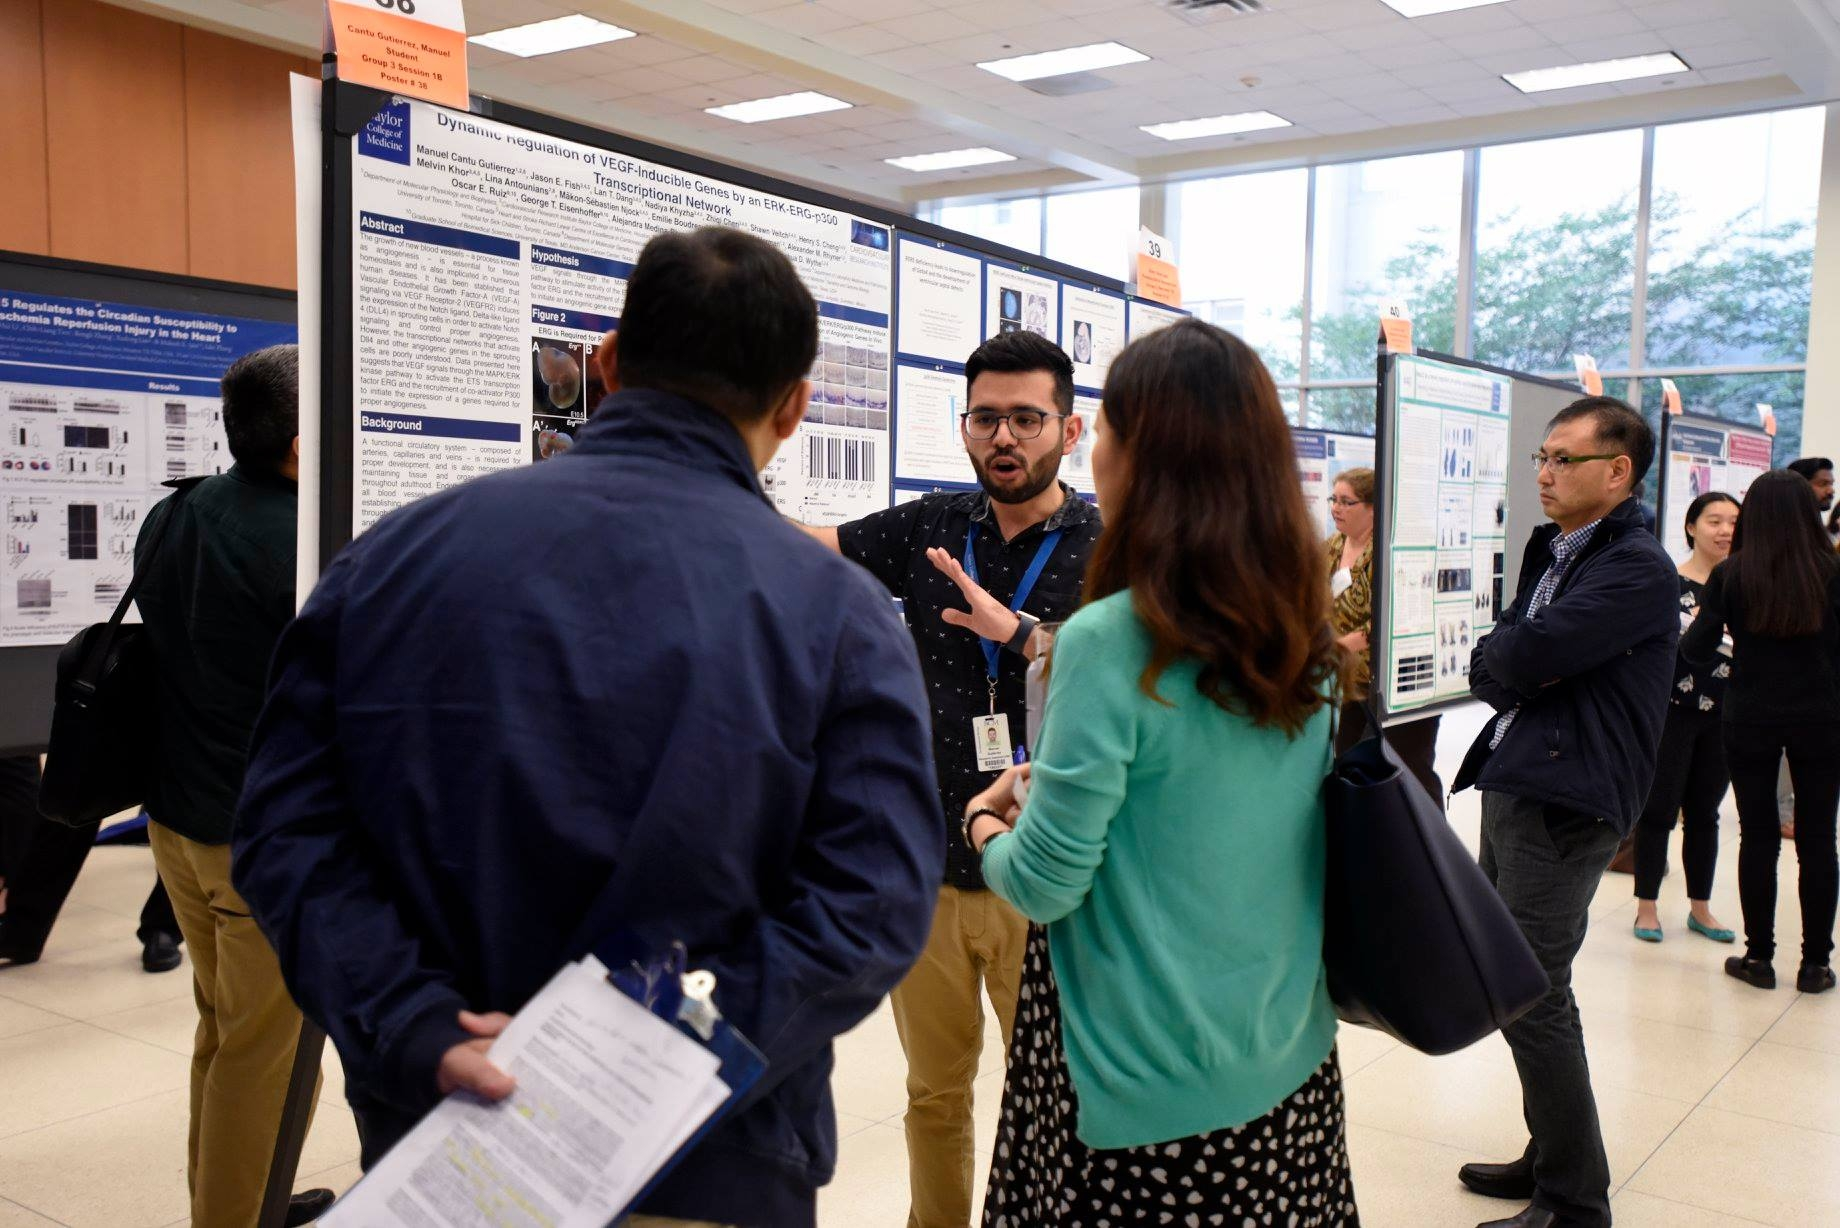 Manuel walking folks through his poster at the annual CVRI symposium in 2017 at BCM.